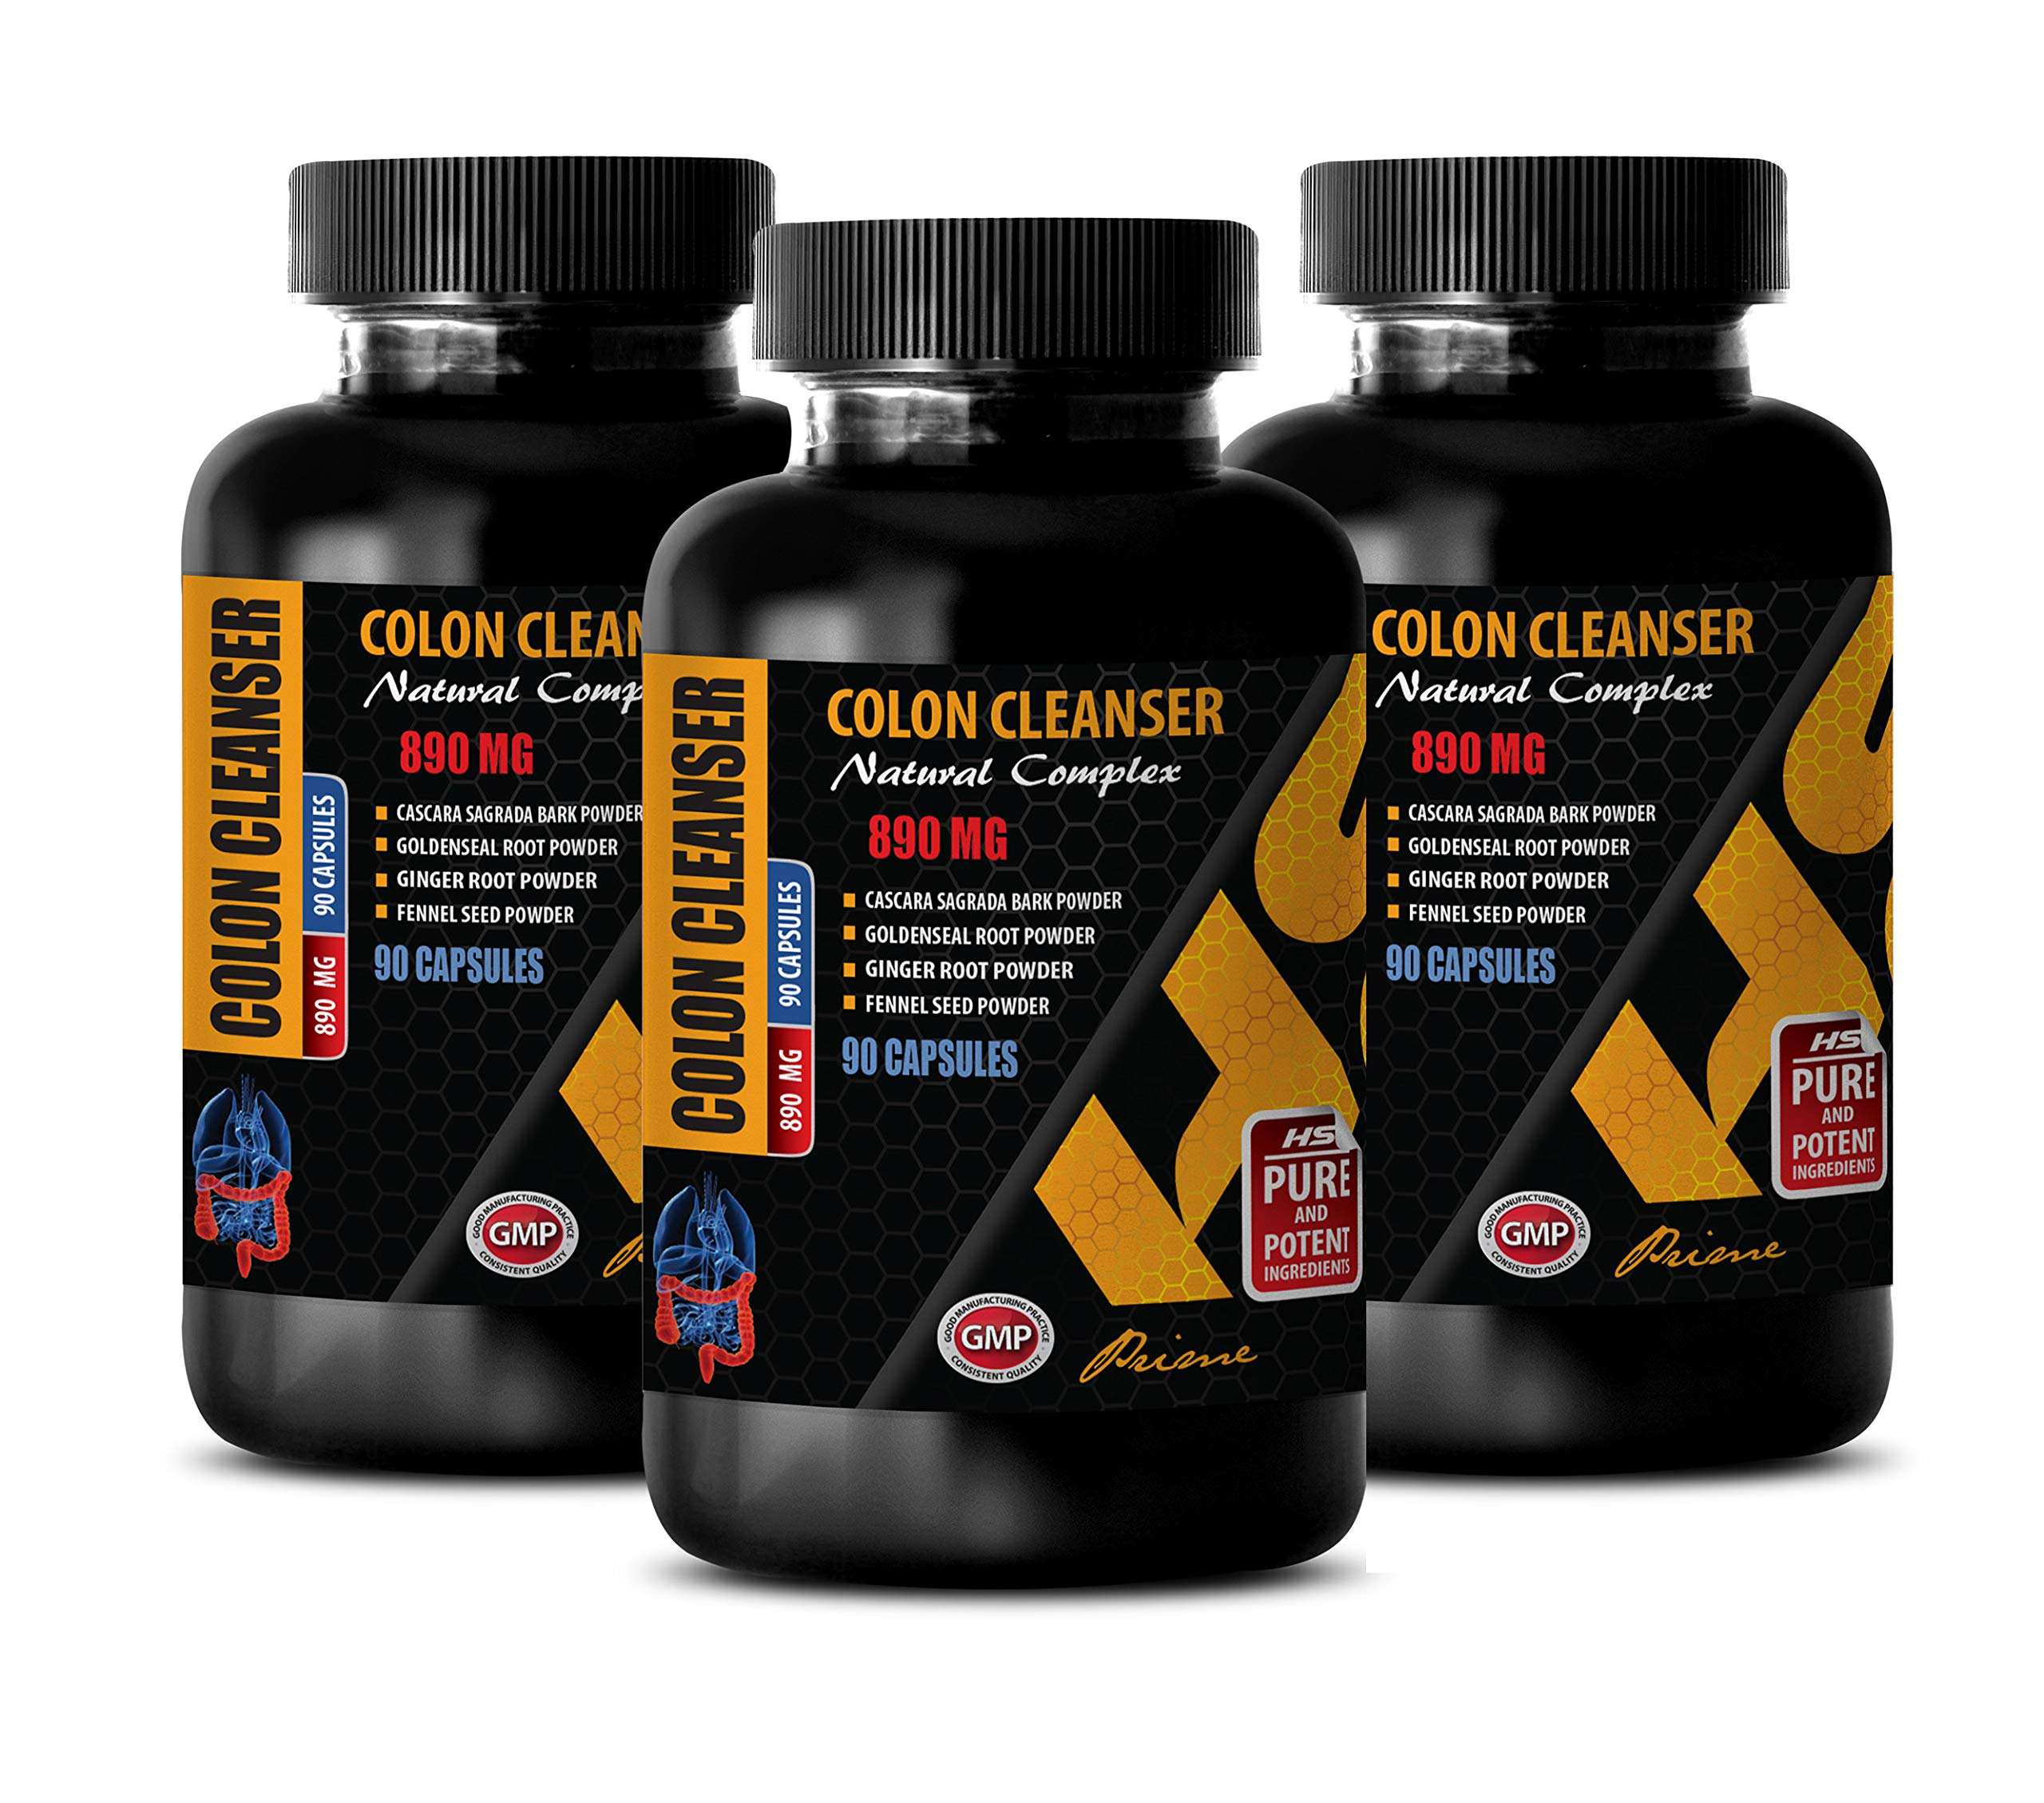 Colon Cleanse Formula - Colon Cleanser 890 MG - Natural Complex - Licorice Root Herbal Extract - 3 Bottles 270 Capsules